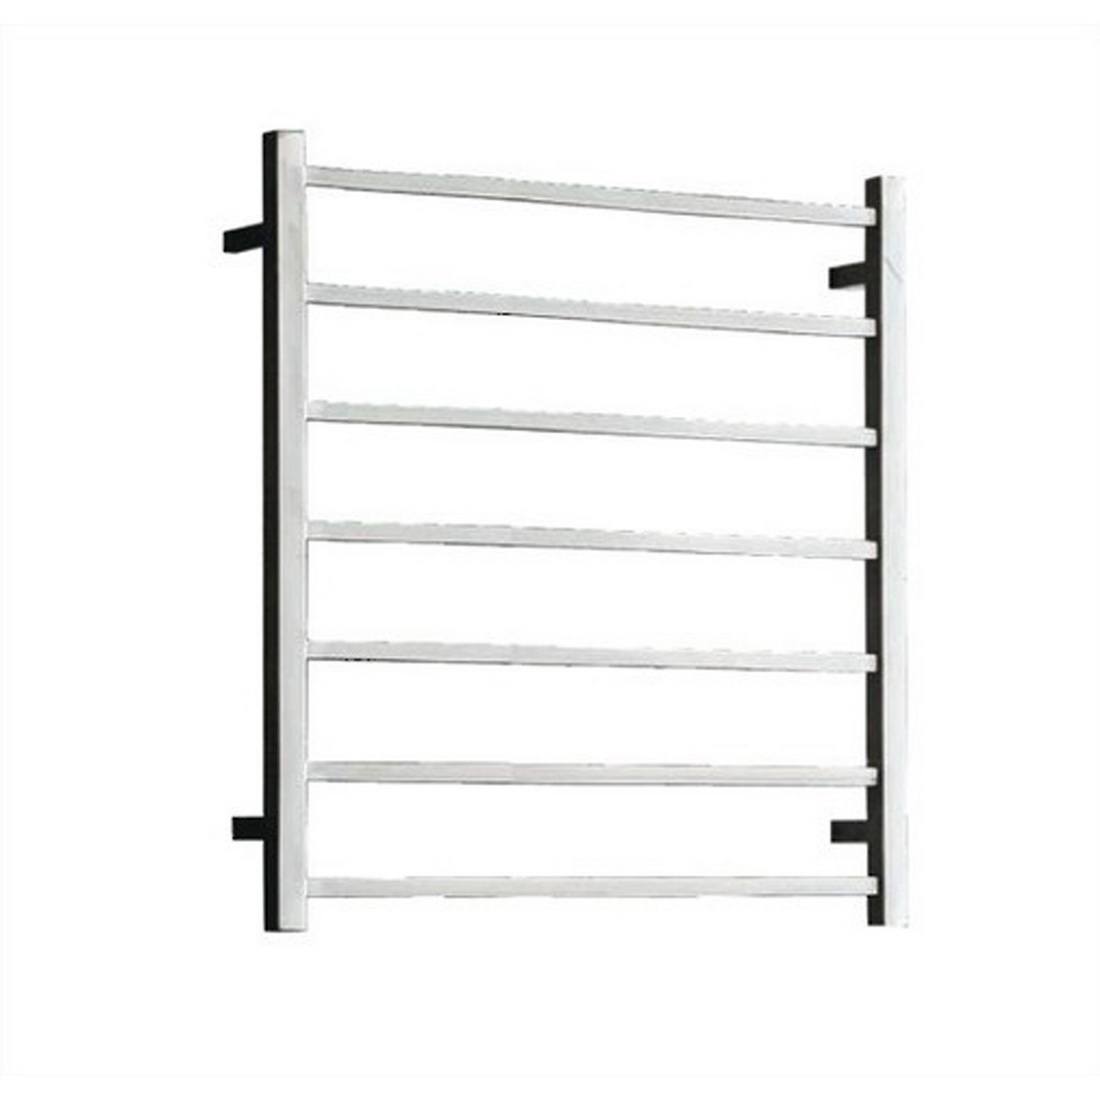 Newtech Square Heated Towel Rail Ladder 800 x 600 x 122 mm Mirror Polished 7 Bars 82 W ST75